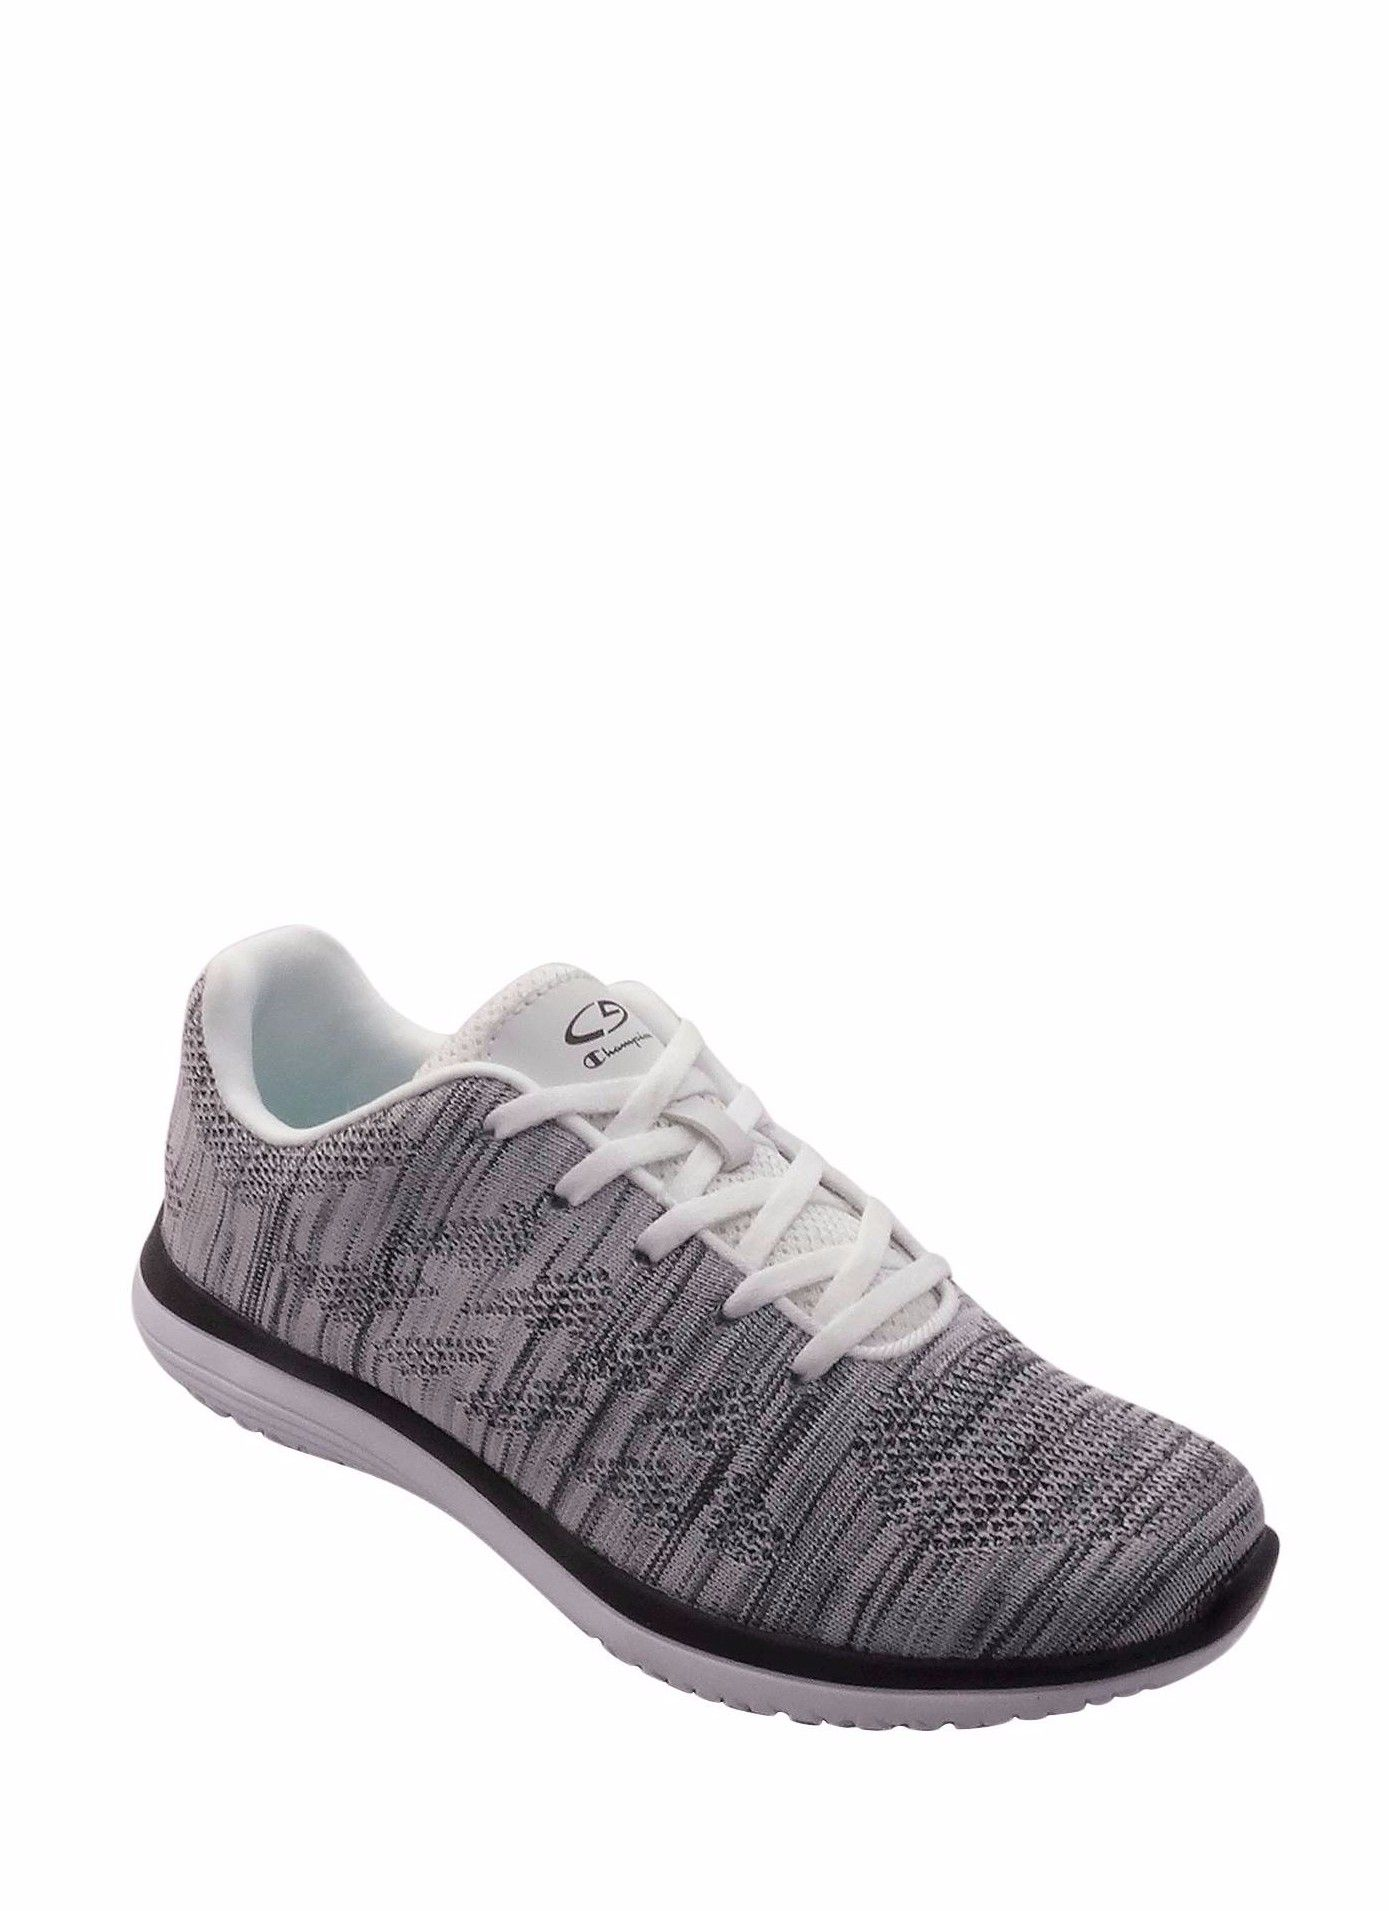 3f7768dec APL Sneakers Are Expensive — but Target Knocked Them Off For Way Less